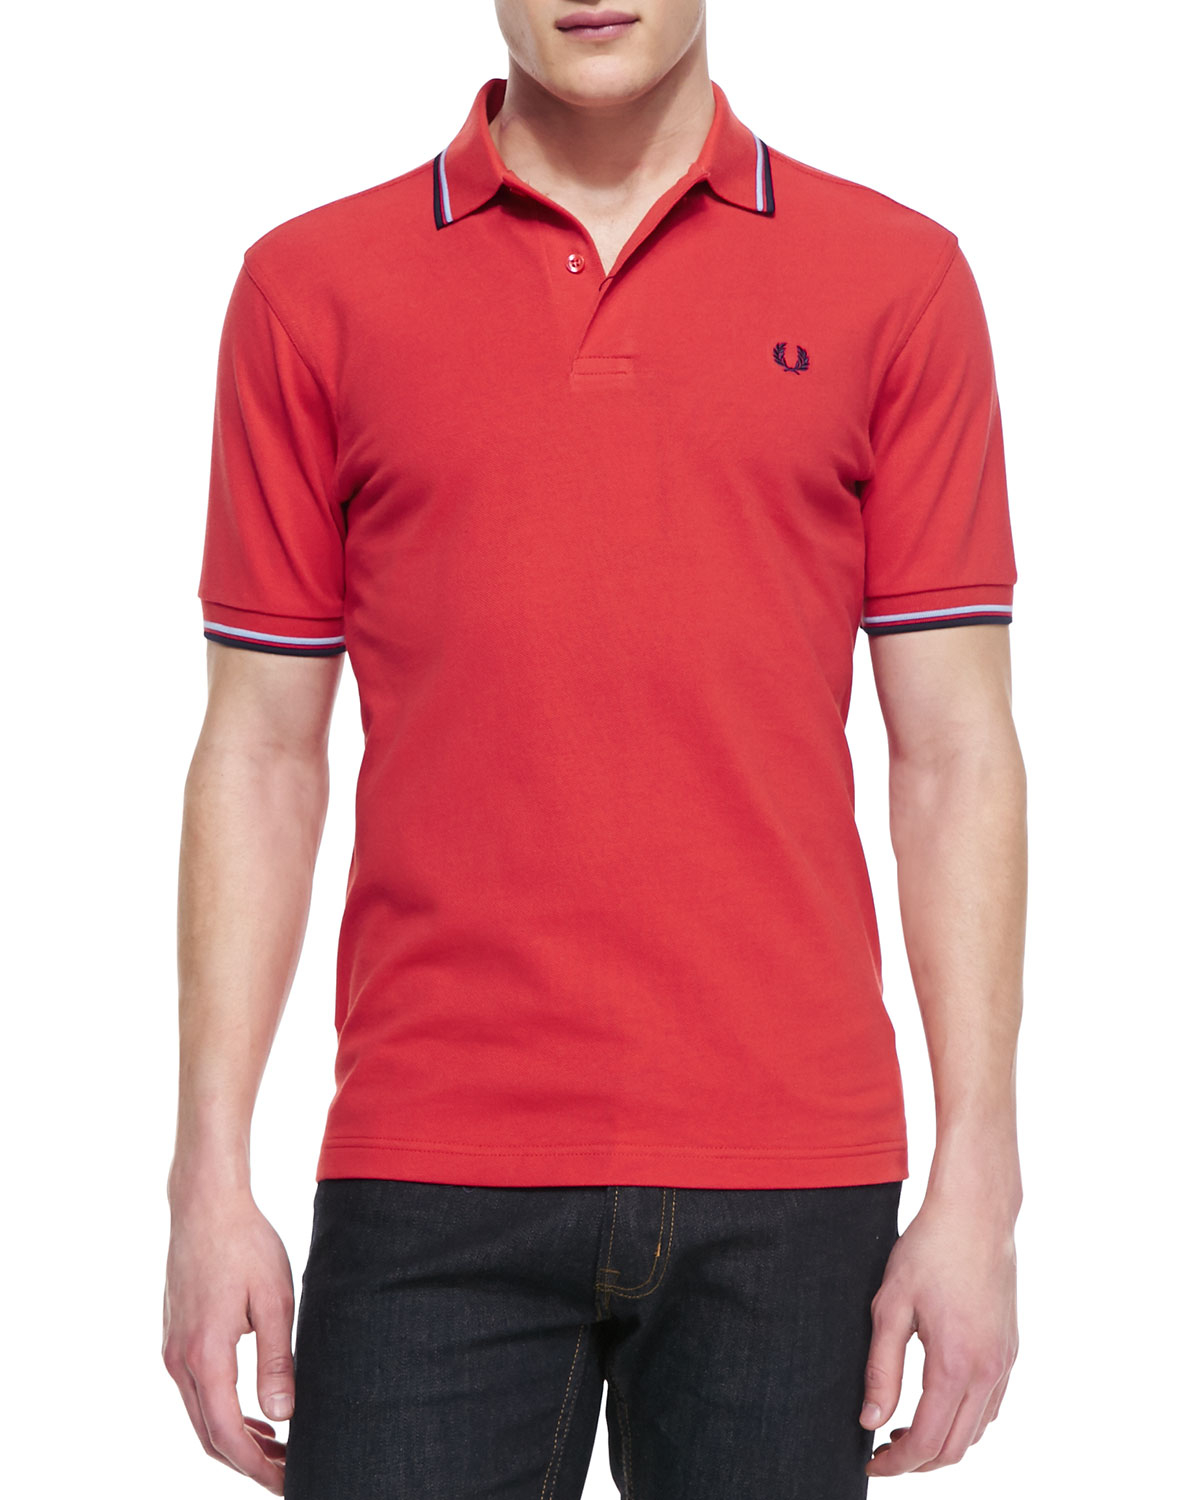 fred perry tipped polo shirt vintage rednavywhite in red for men vintage re lyst. Black Bedroom Furniture Sets. Home Design Ideas